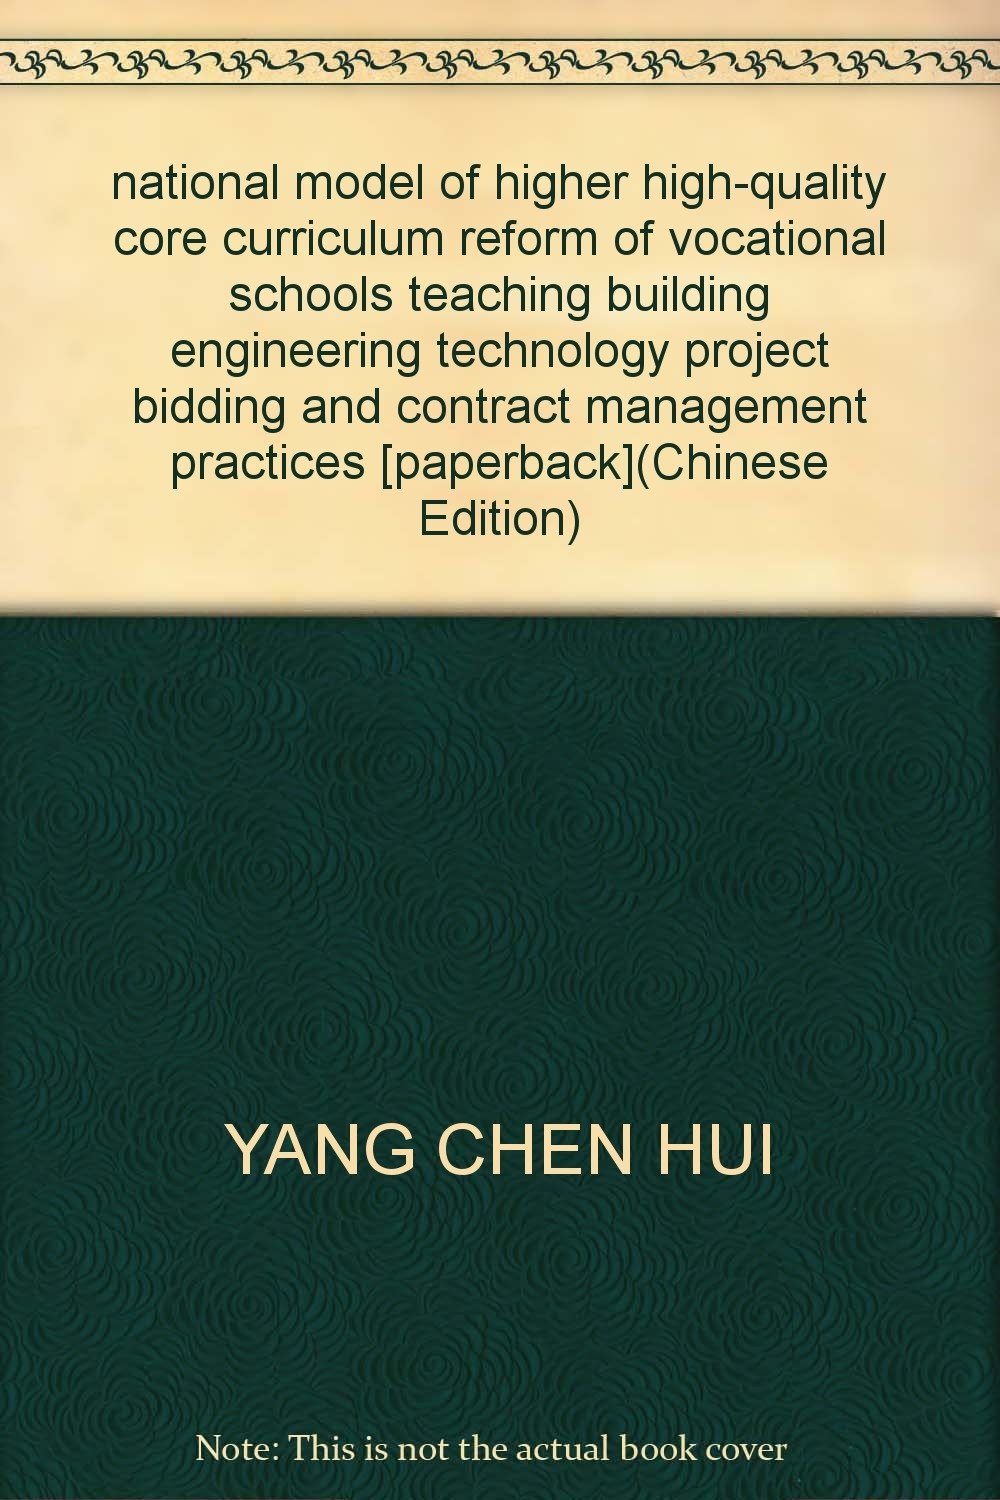 Download national model of higher high-quality core curriculum reform of vocational schools teaching building engineering technology project bidding and contract management practices [paperback](Chinese Edition) pdf